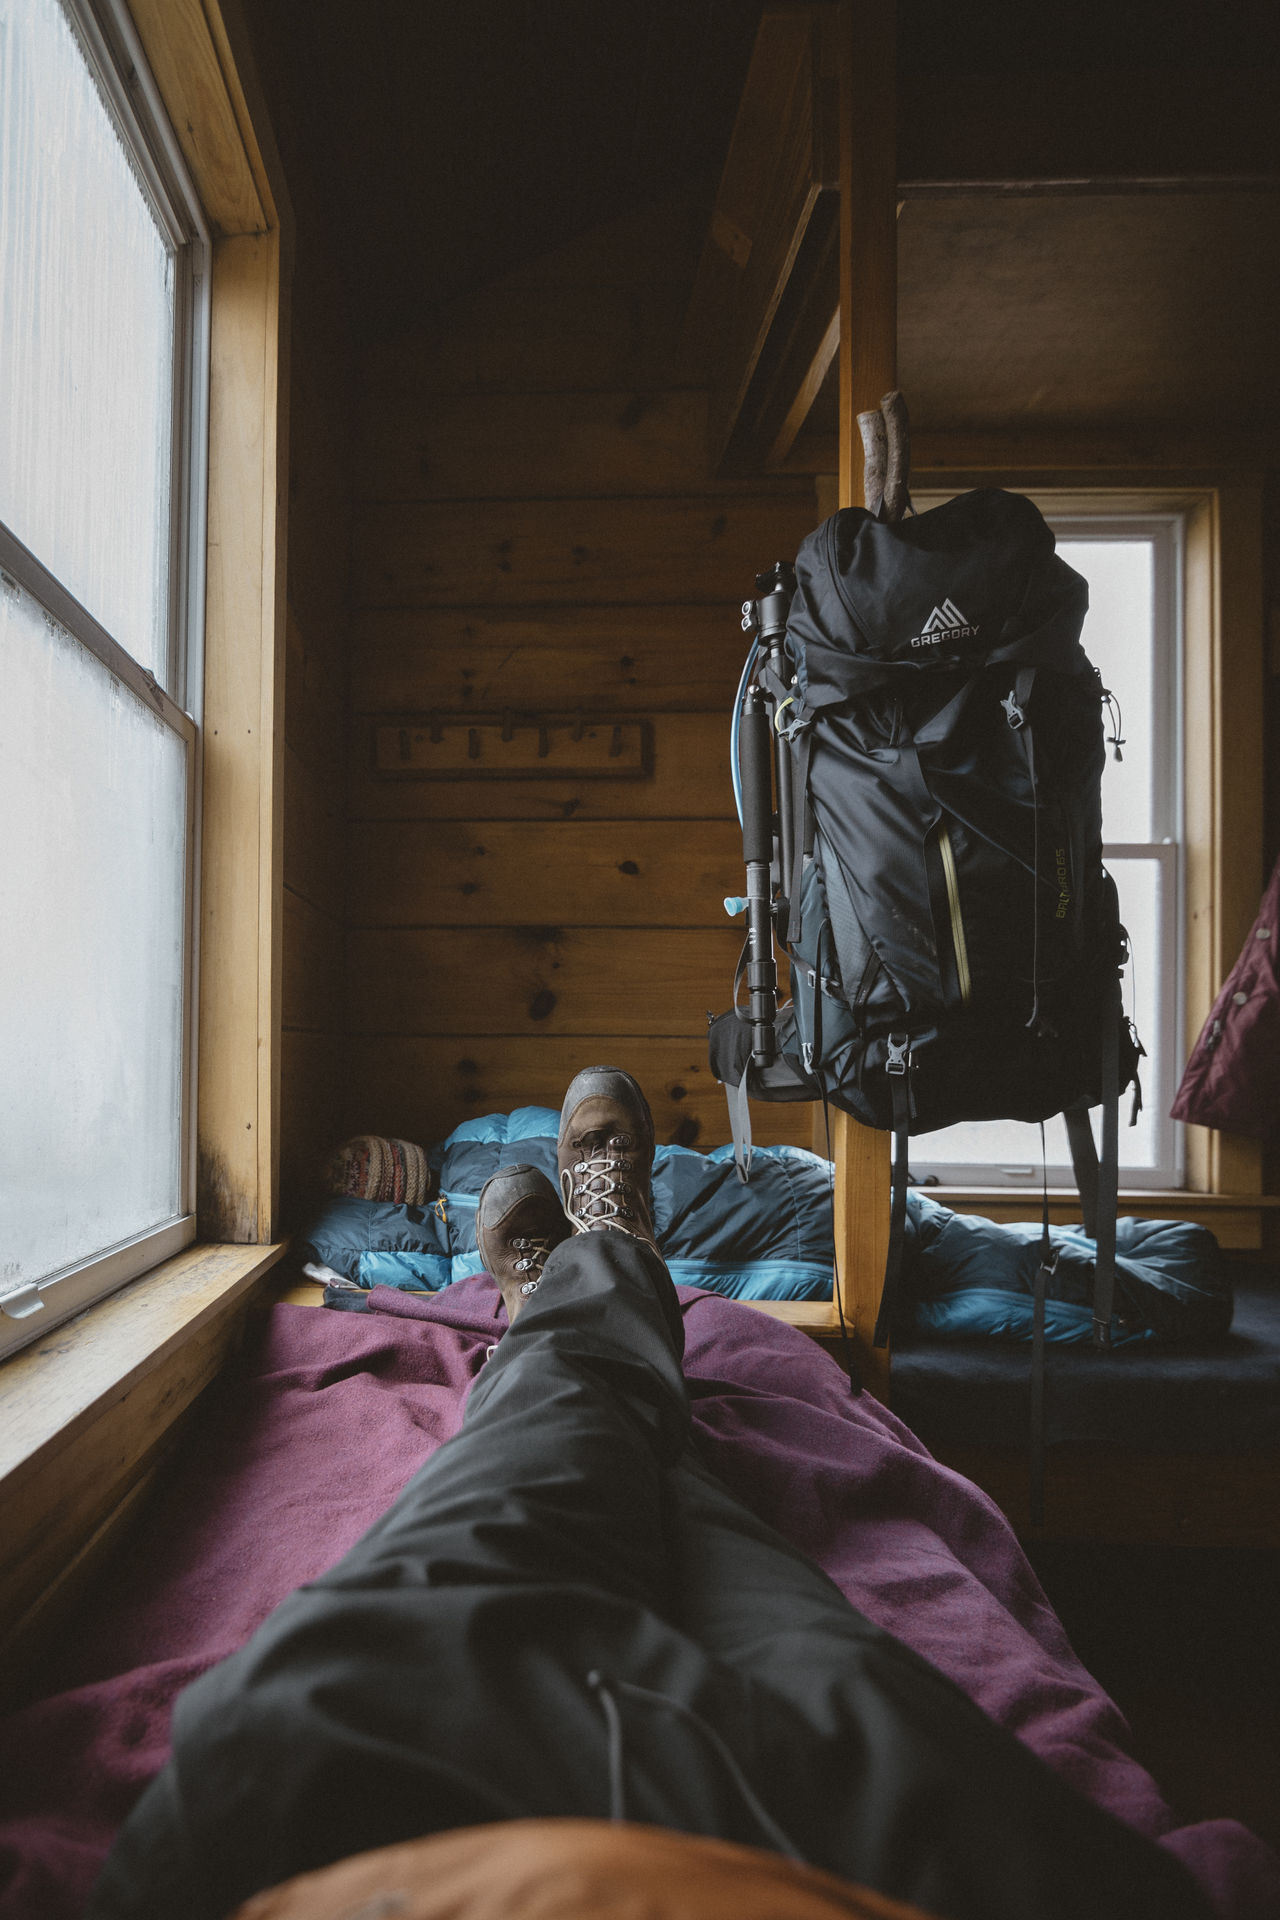 Letting her sleep a few minutes longer before we start the day of hiking. Lakes of the Clouds Hut, New Hampshire Backpack Backpacking Bed Cabin Cozy Cozy Place Folk Hut Indoors  Leisure Activity Lifestyles New Hampshire Relaxation Togetherness White Mountain National Forest